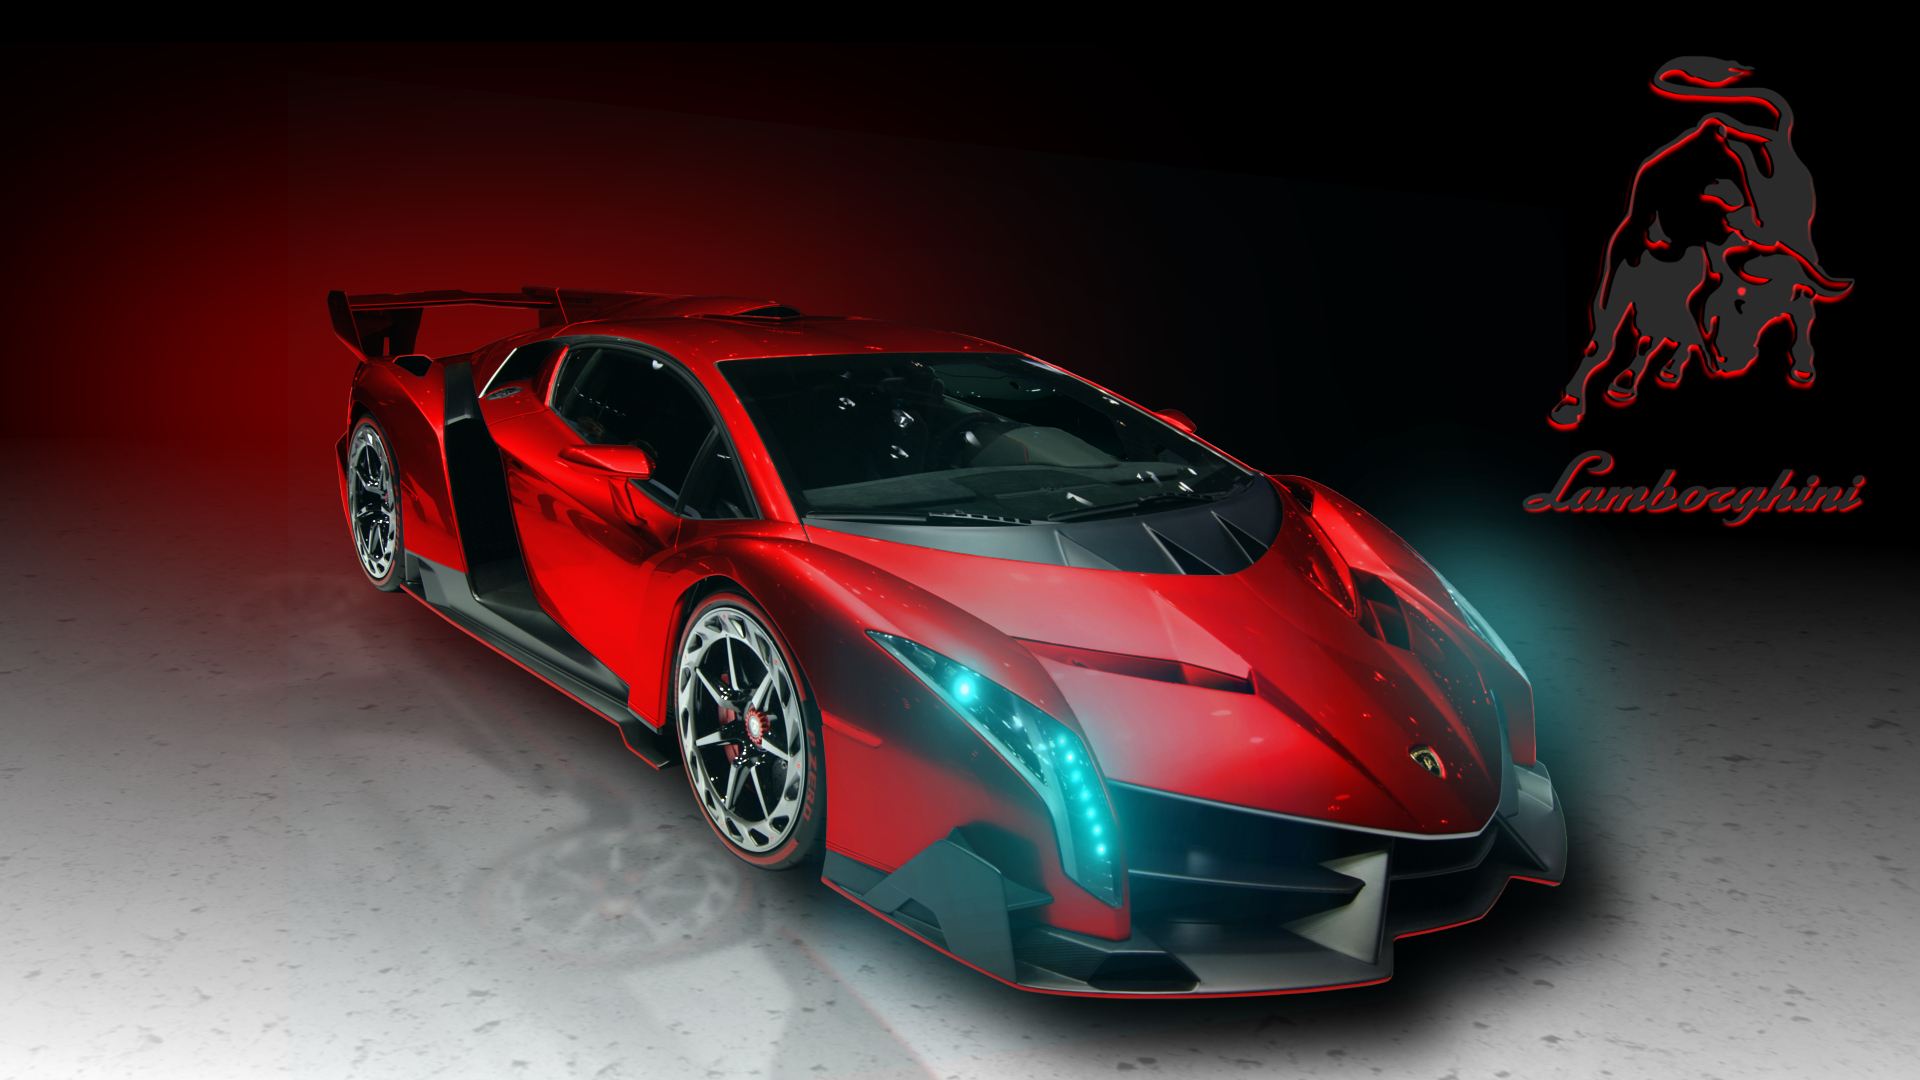 Download Lamborghini Veneno Red Art HD Wallpaper 4117 Full Size 1920x1080